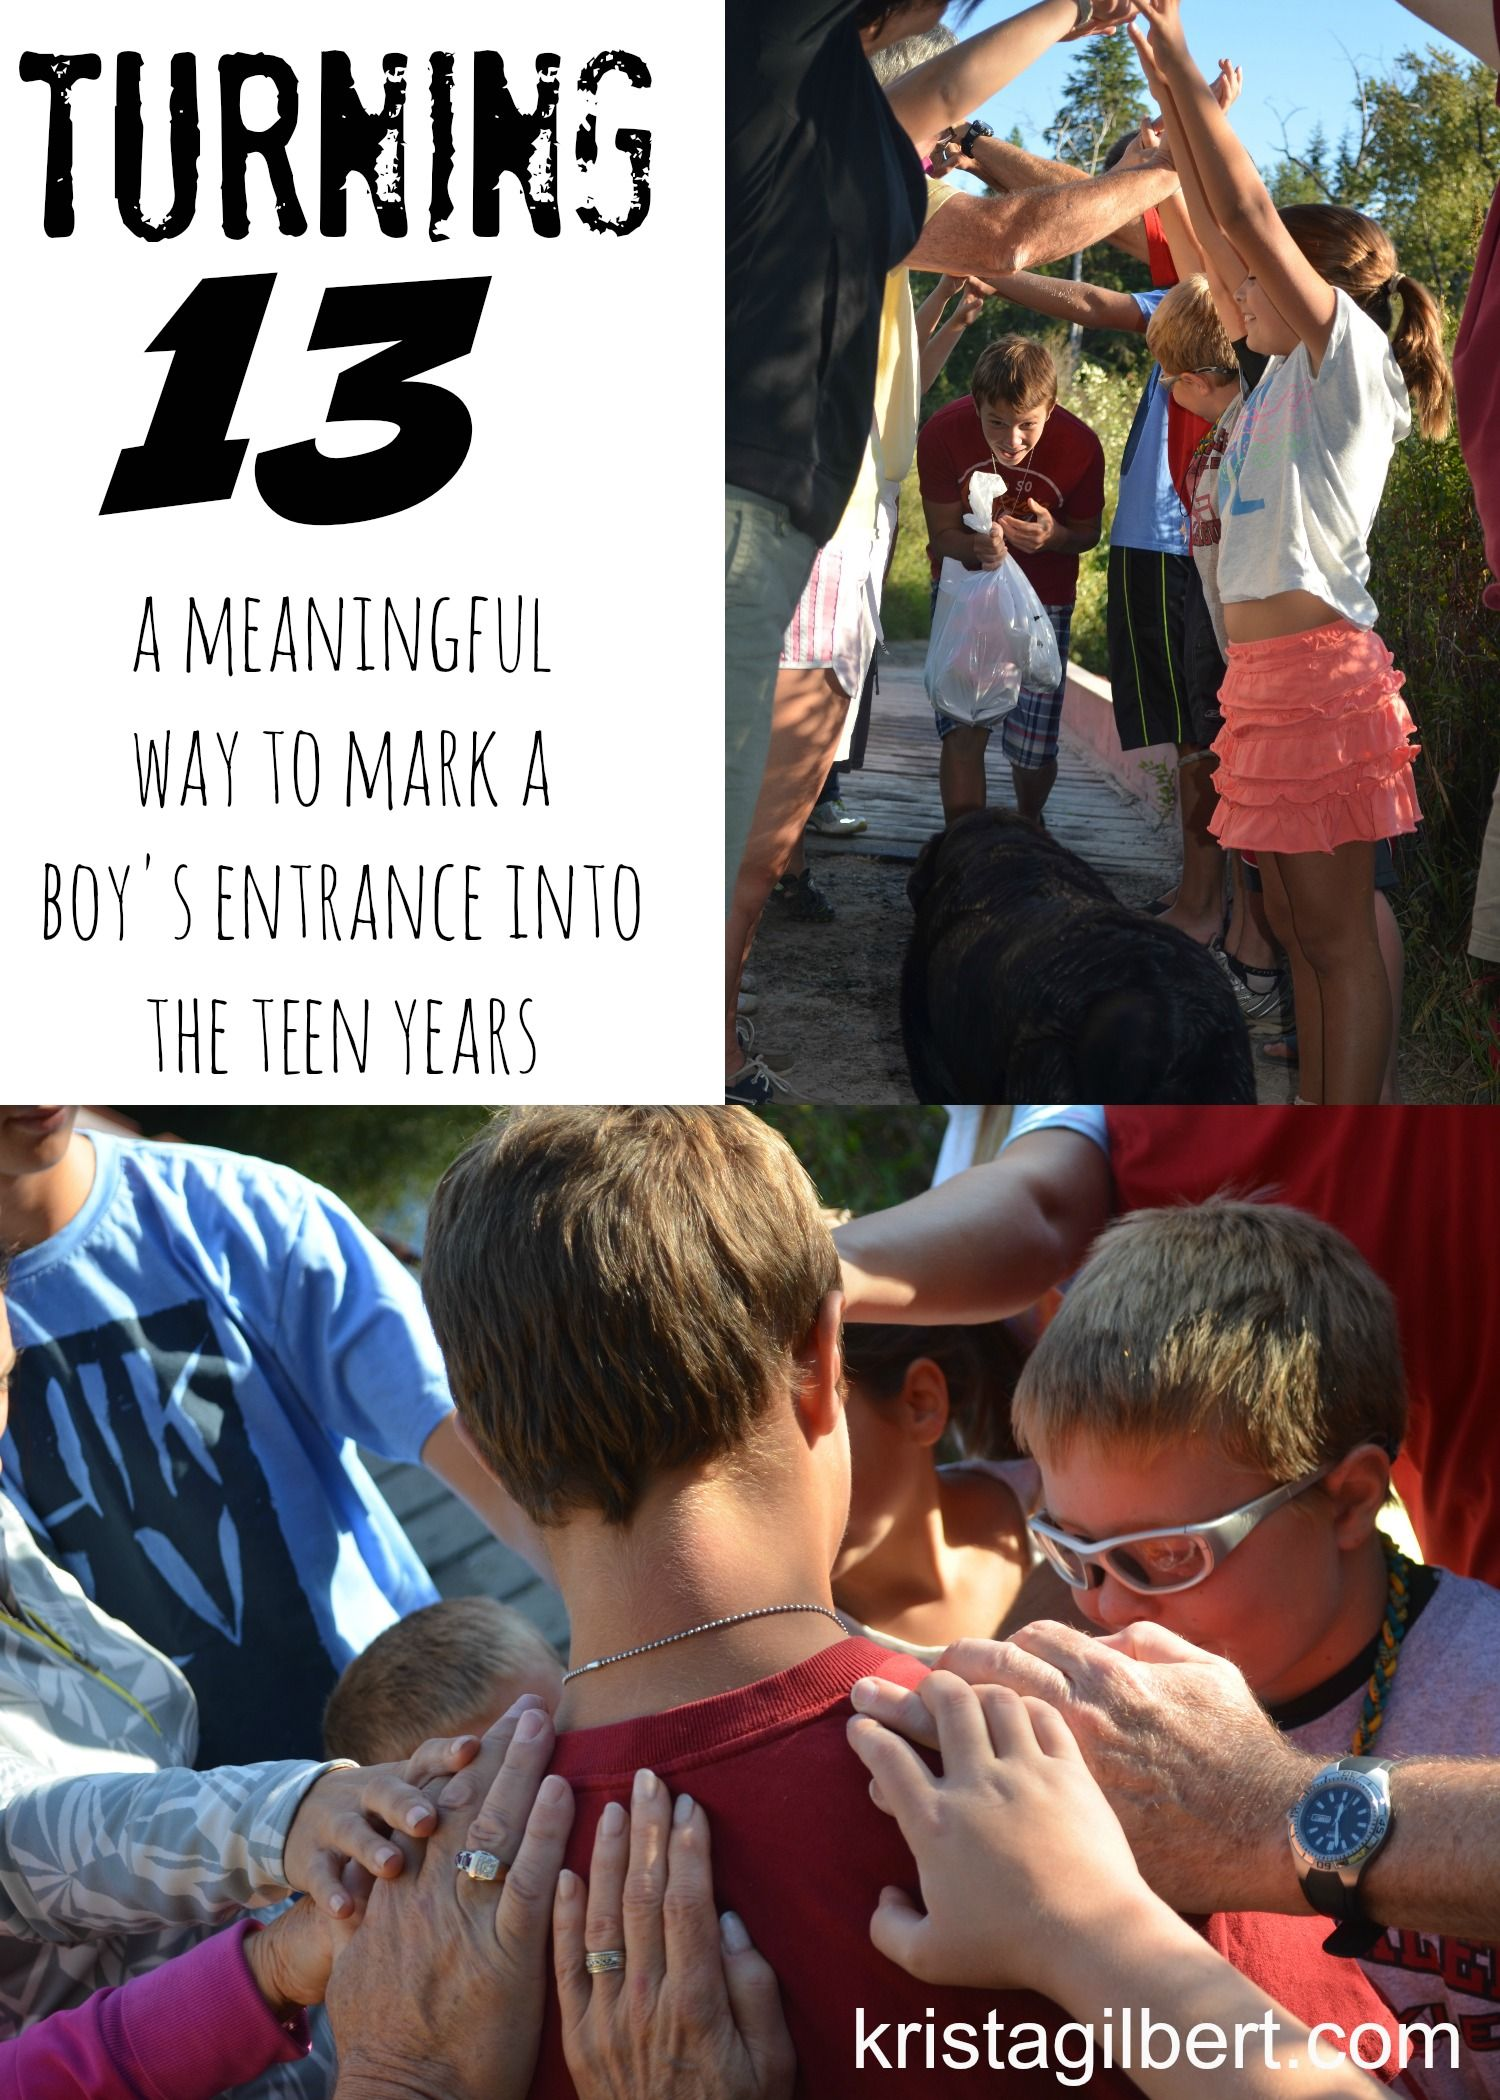 13 Is A Milestone Birthday Huge Deal For All Involved Both Child And Parents Will Come Face To With New Realities The Climb Up Mountain